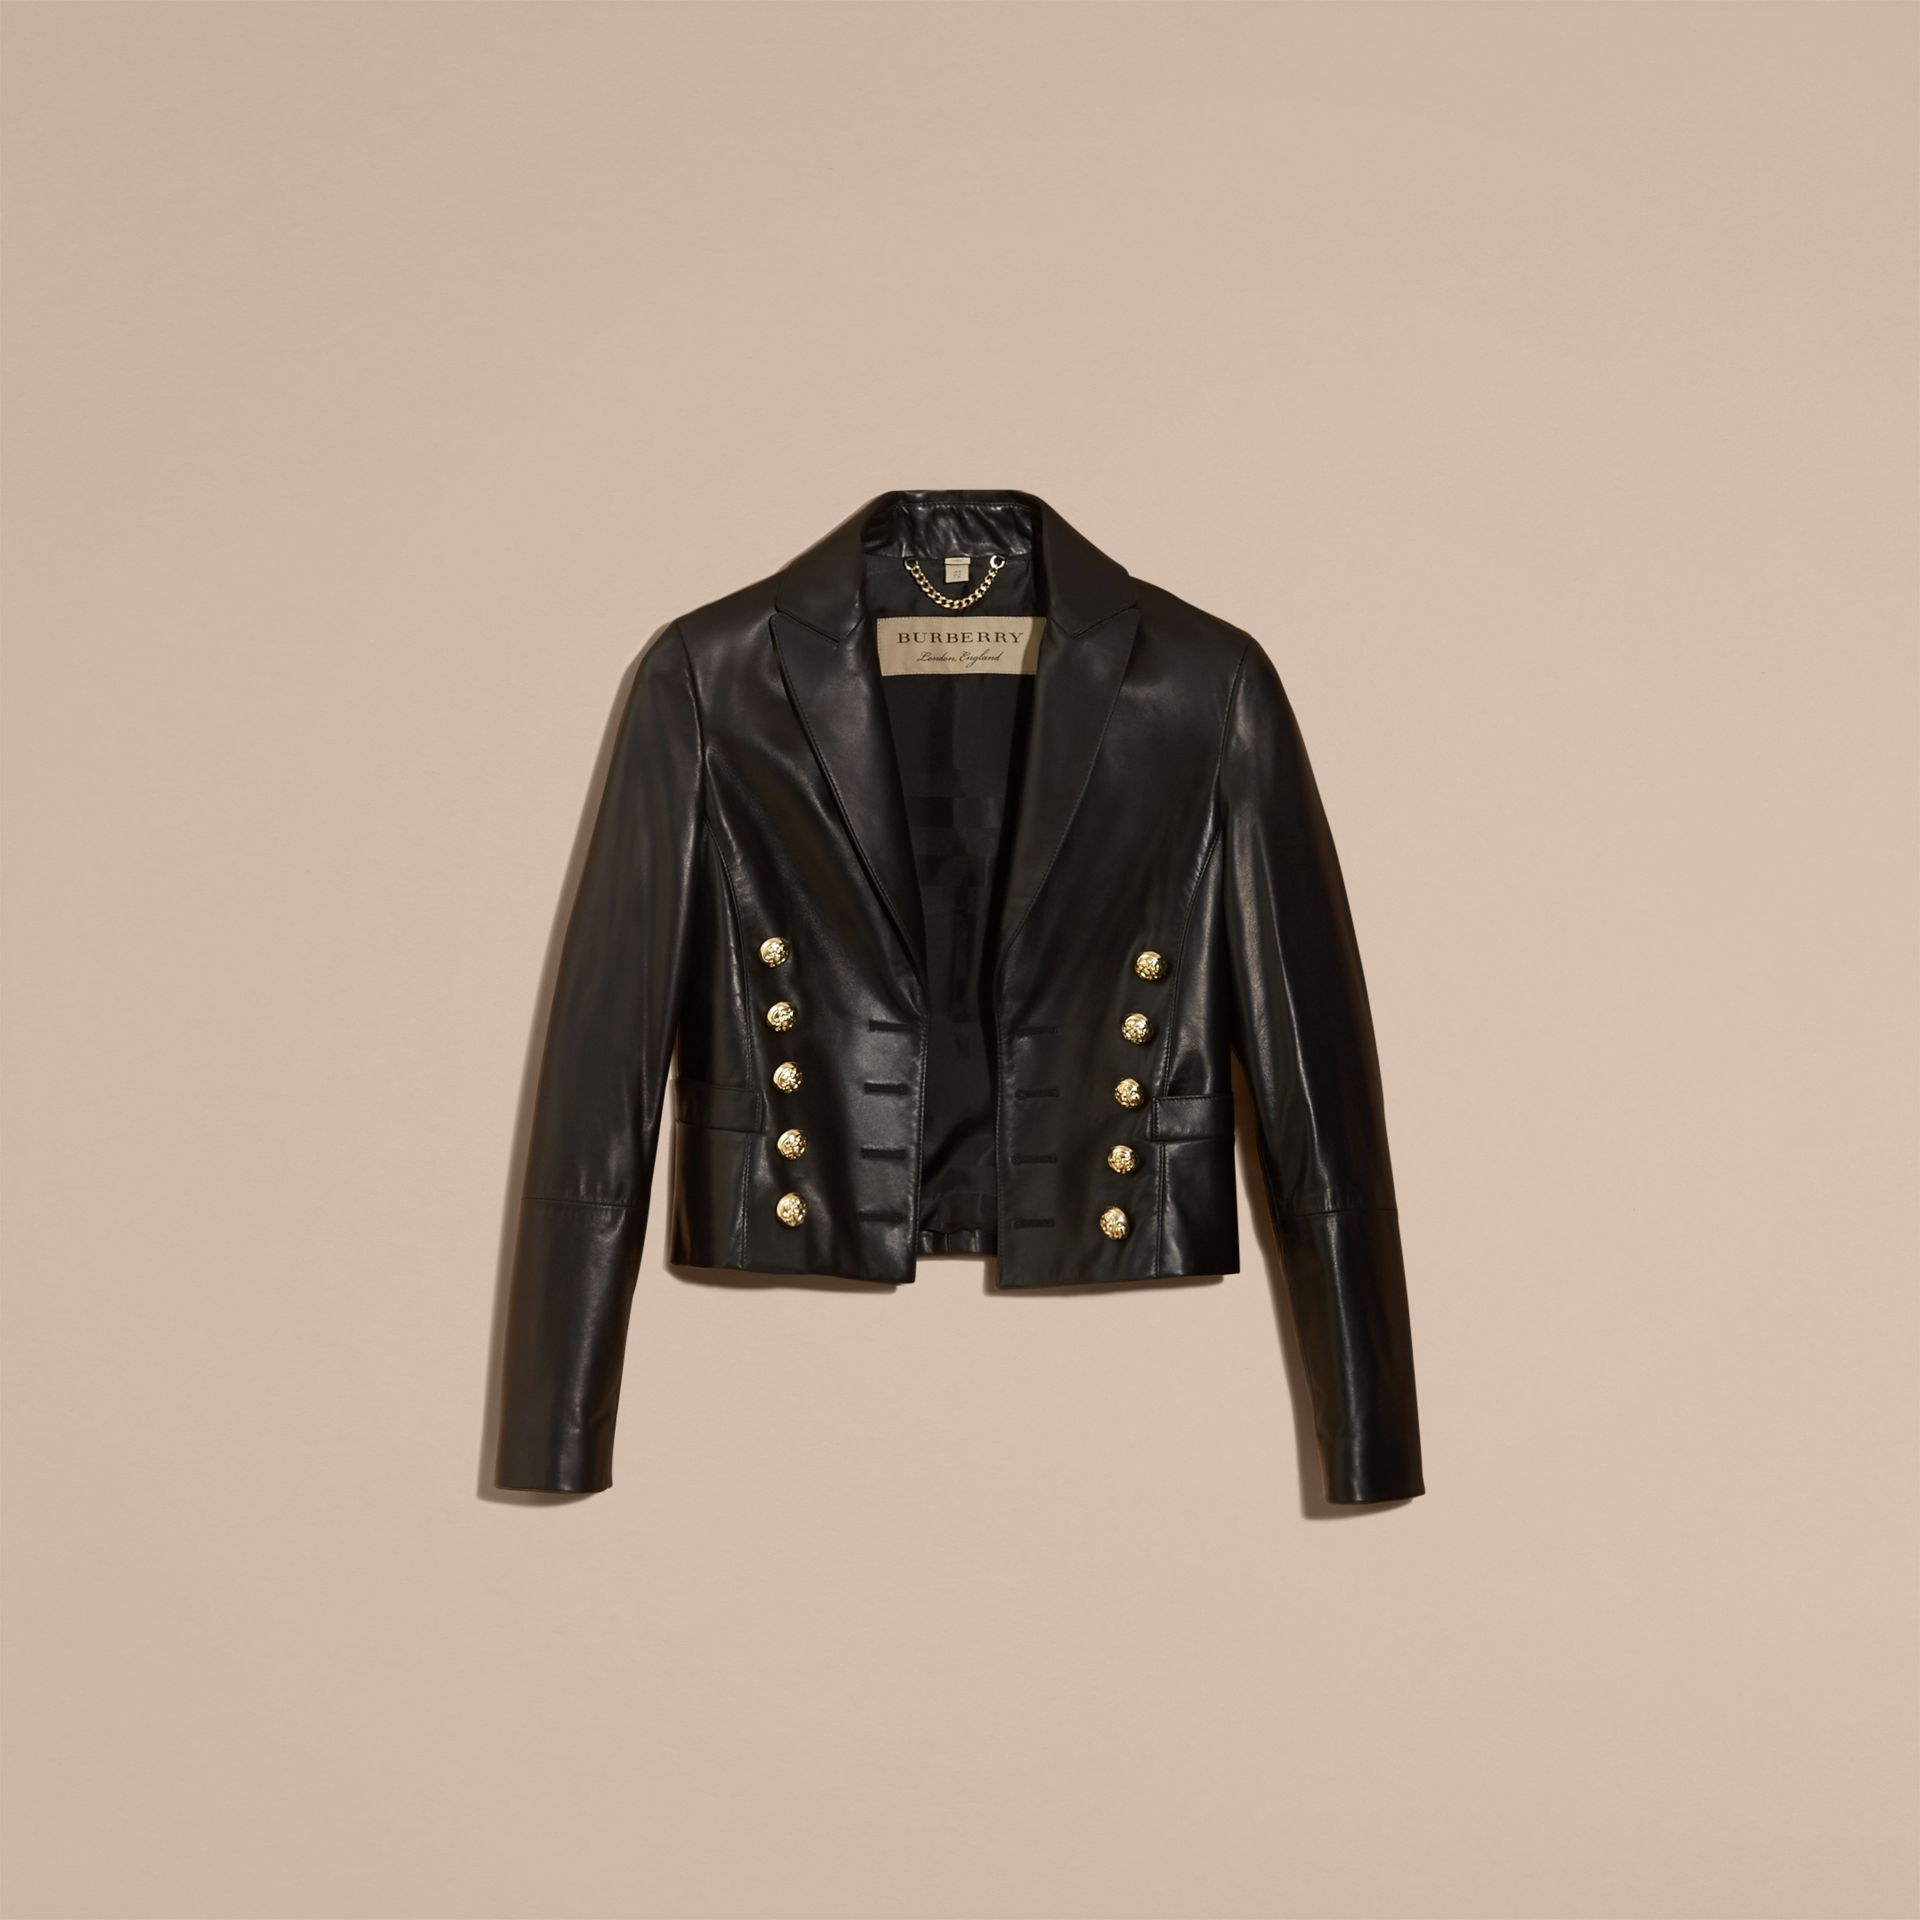 Black Cropped Lambskin Military Jacket - 갤러리 이미지 4